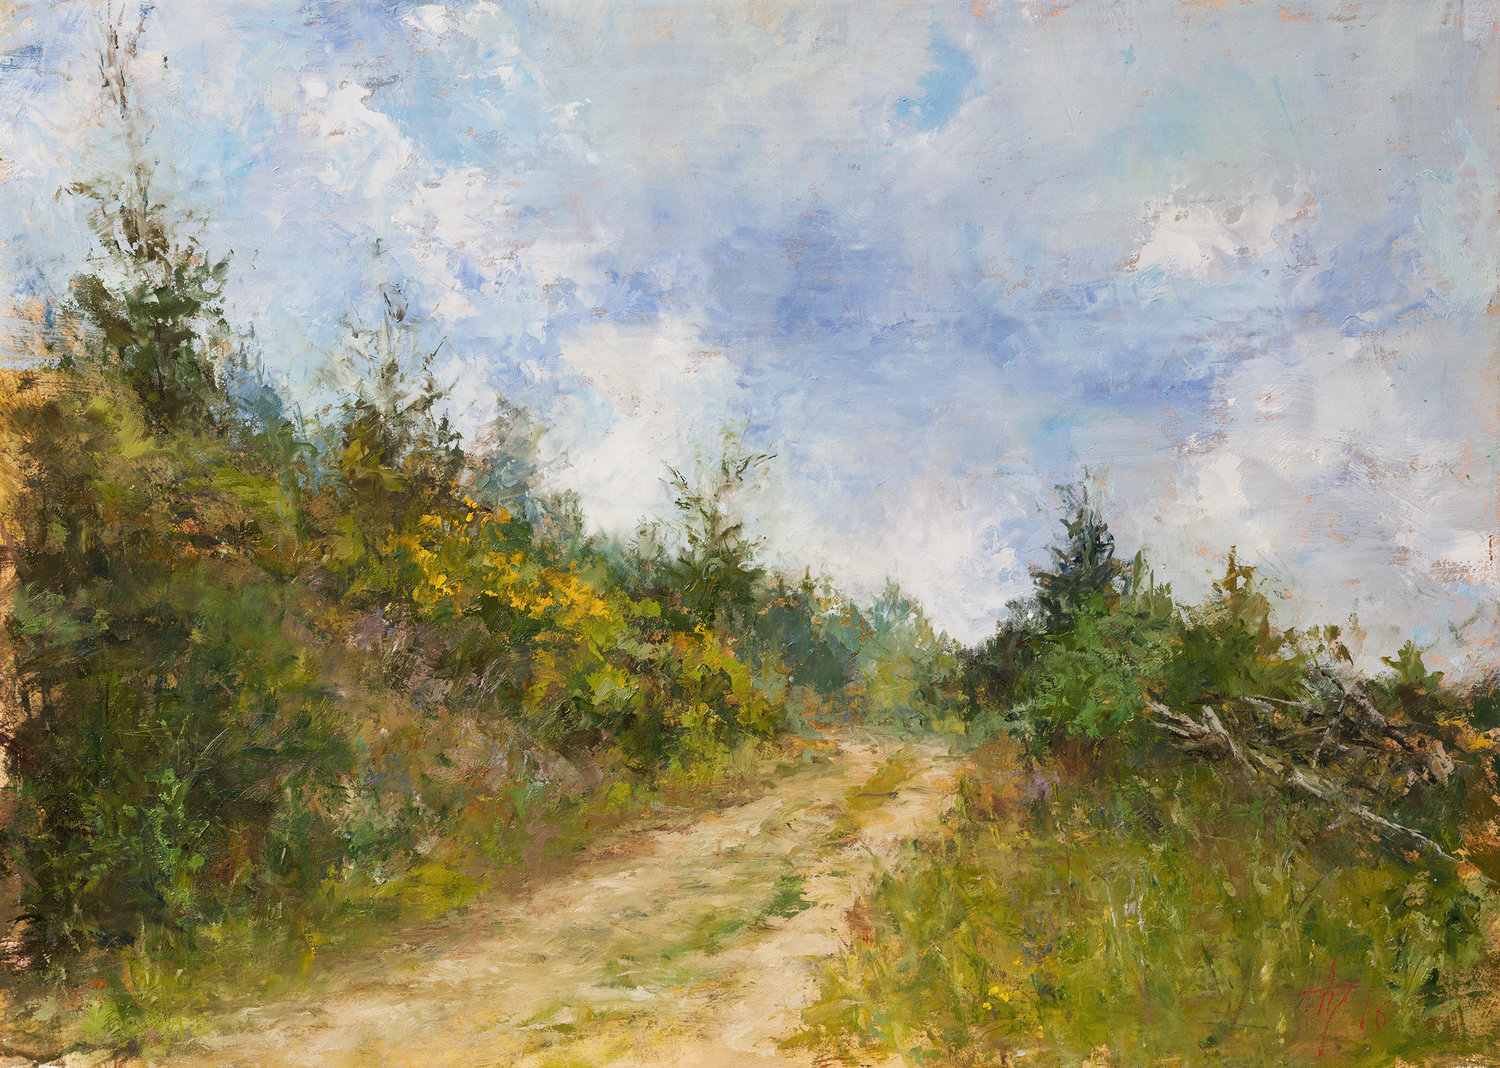 'Above Martinsthal', Andrei Tchernoukha, Oil on wood panel, 25 x 35 x 0.6 cm